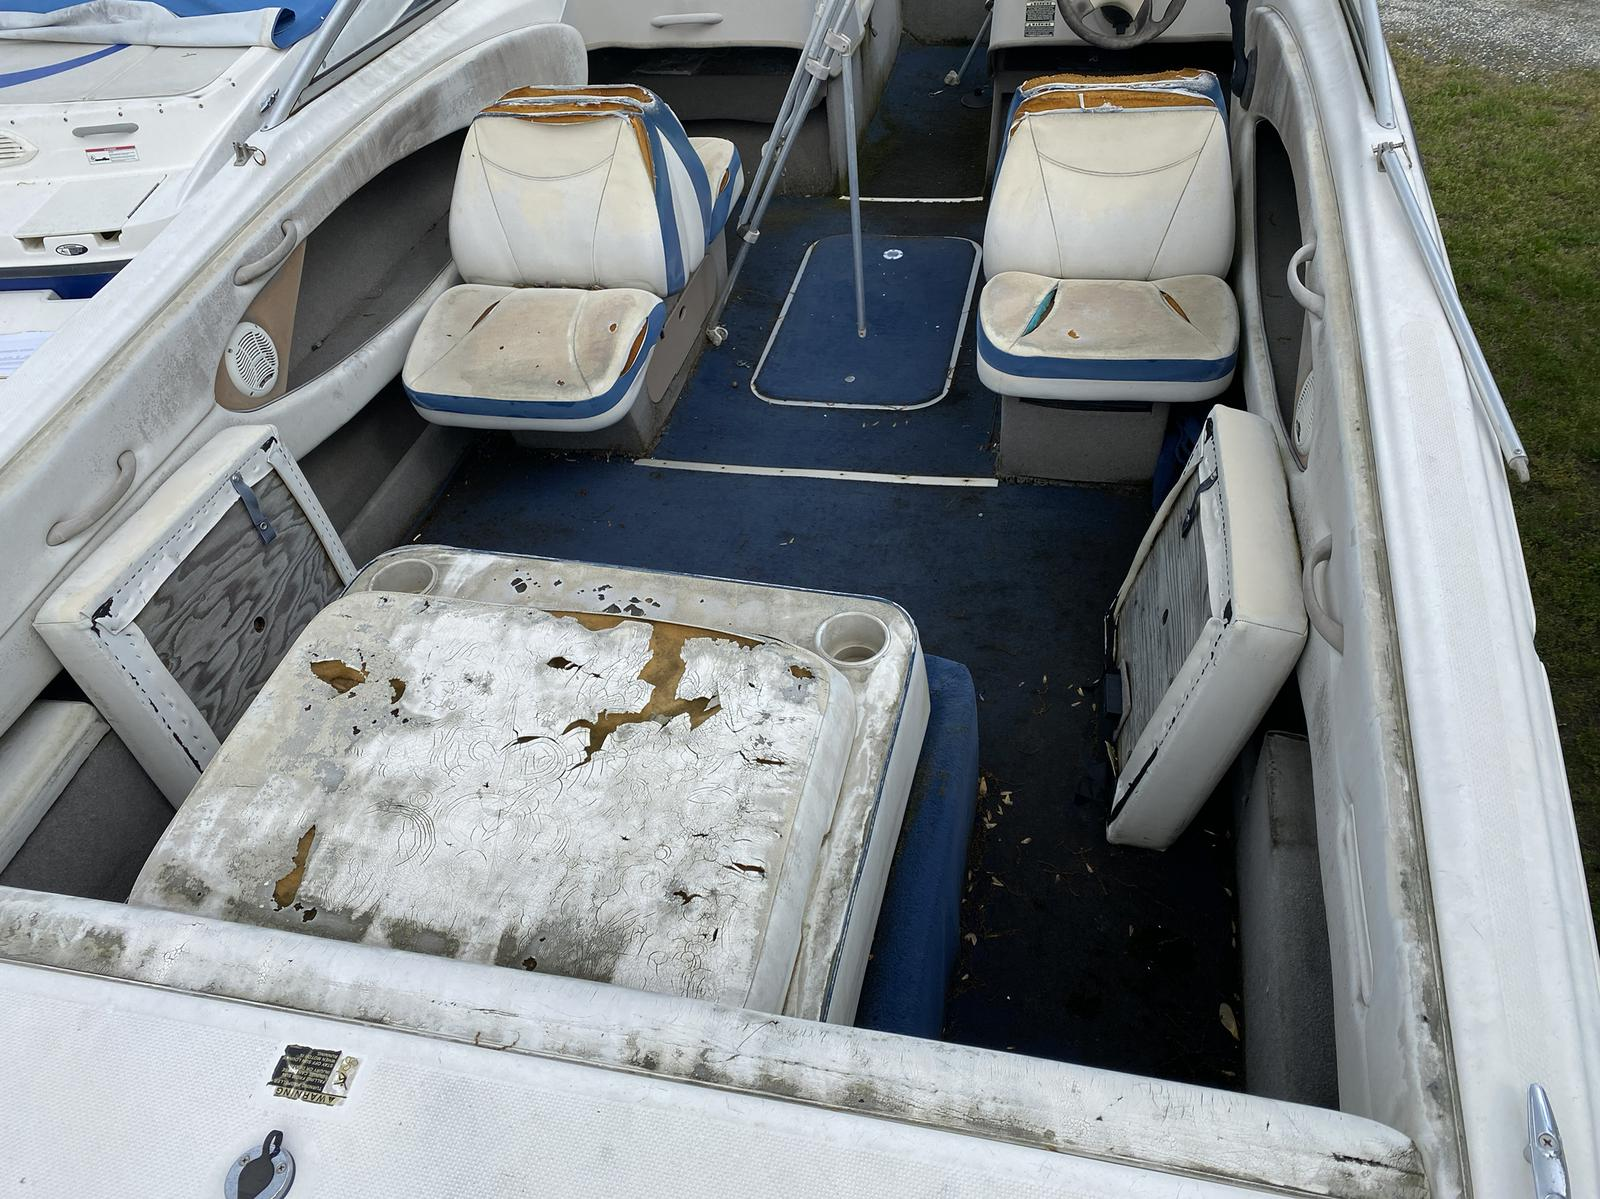 2005 Bayliner boat for sale, model of the boat is 215 Classic & Image # 5 of 5